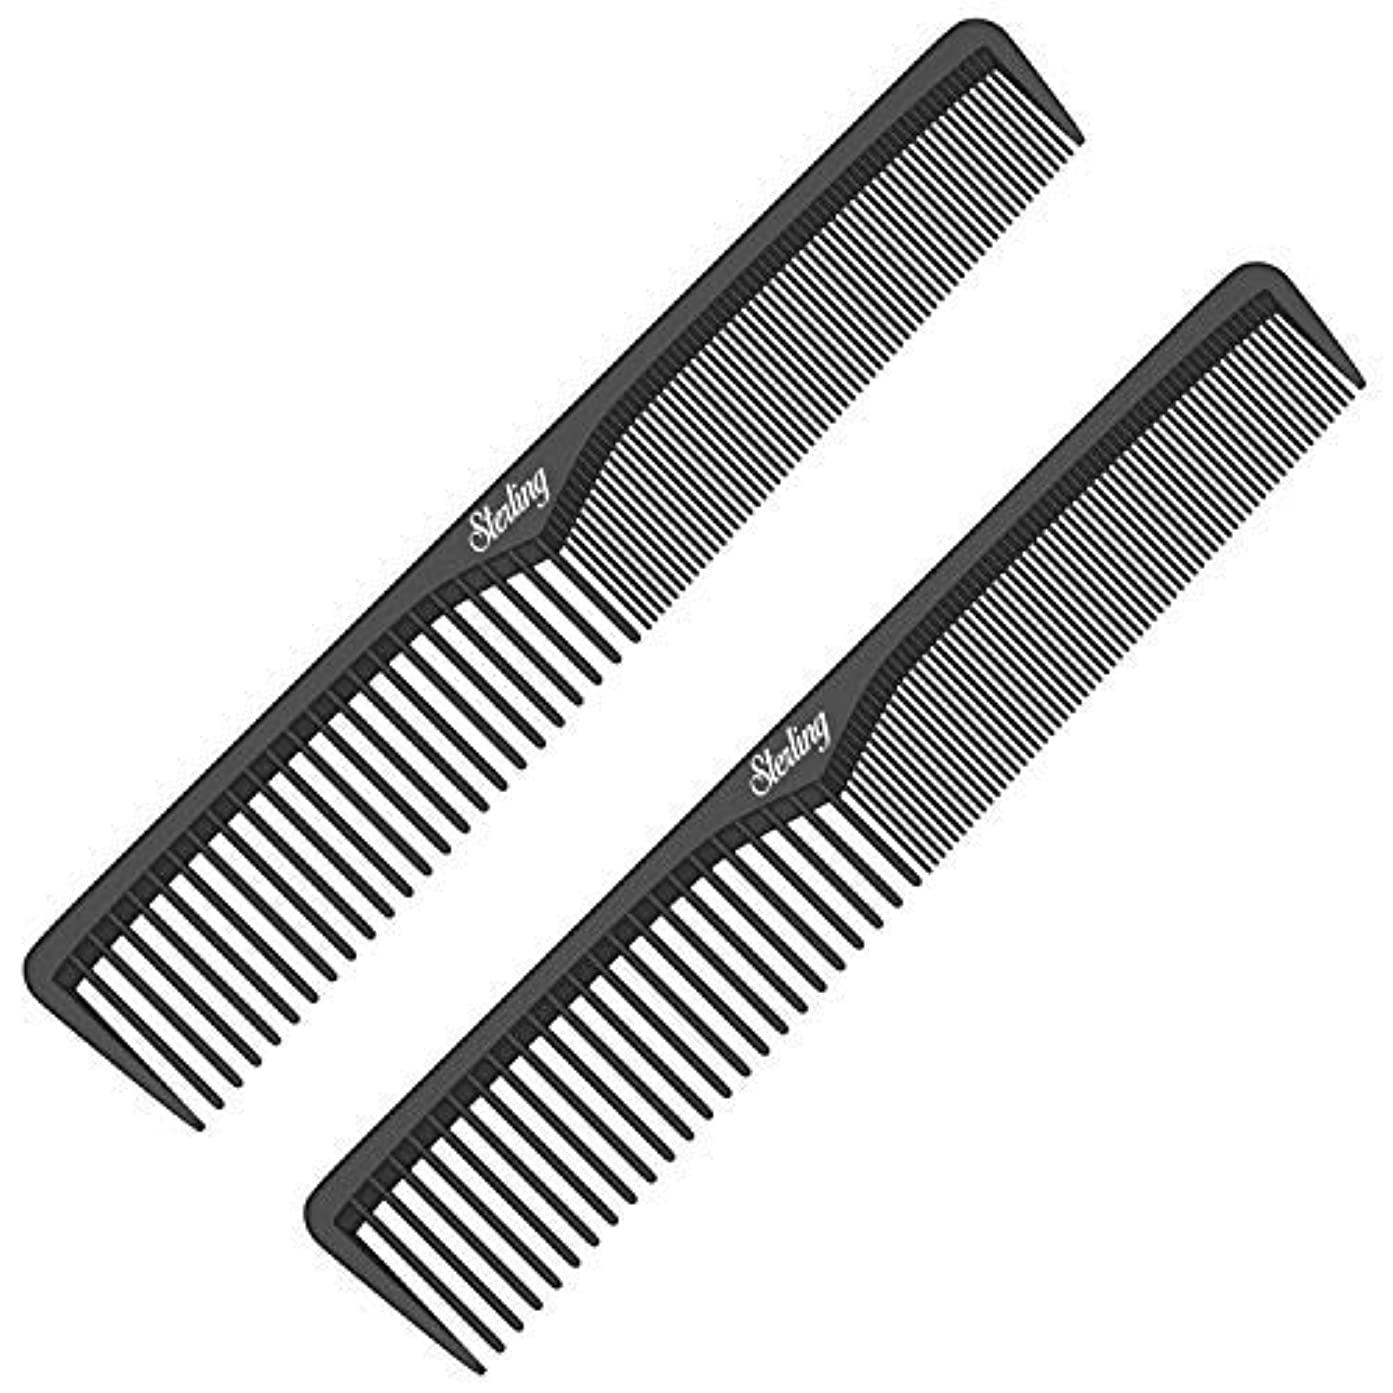 ペネロペ影響力のあるはっきりしないStyling Comb (2 Pack) | Professional 7  Black Carbon Fiber Anti Static Chemical And Heat Resistant Combs For All...